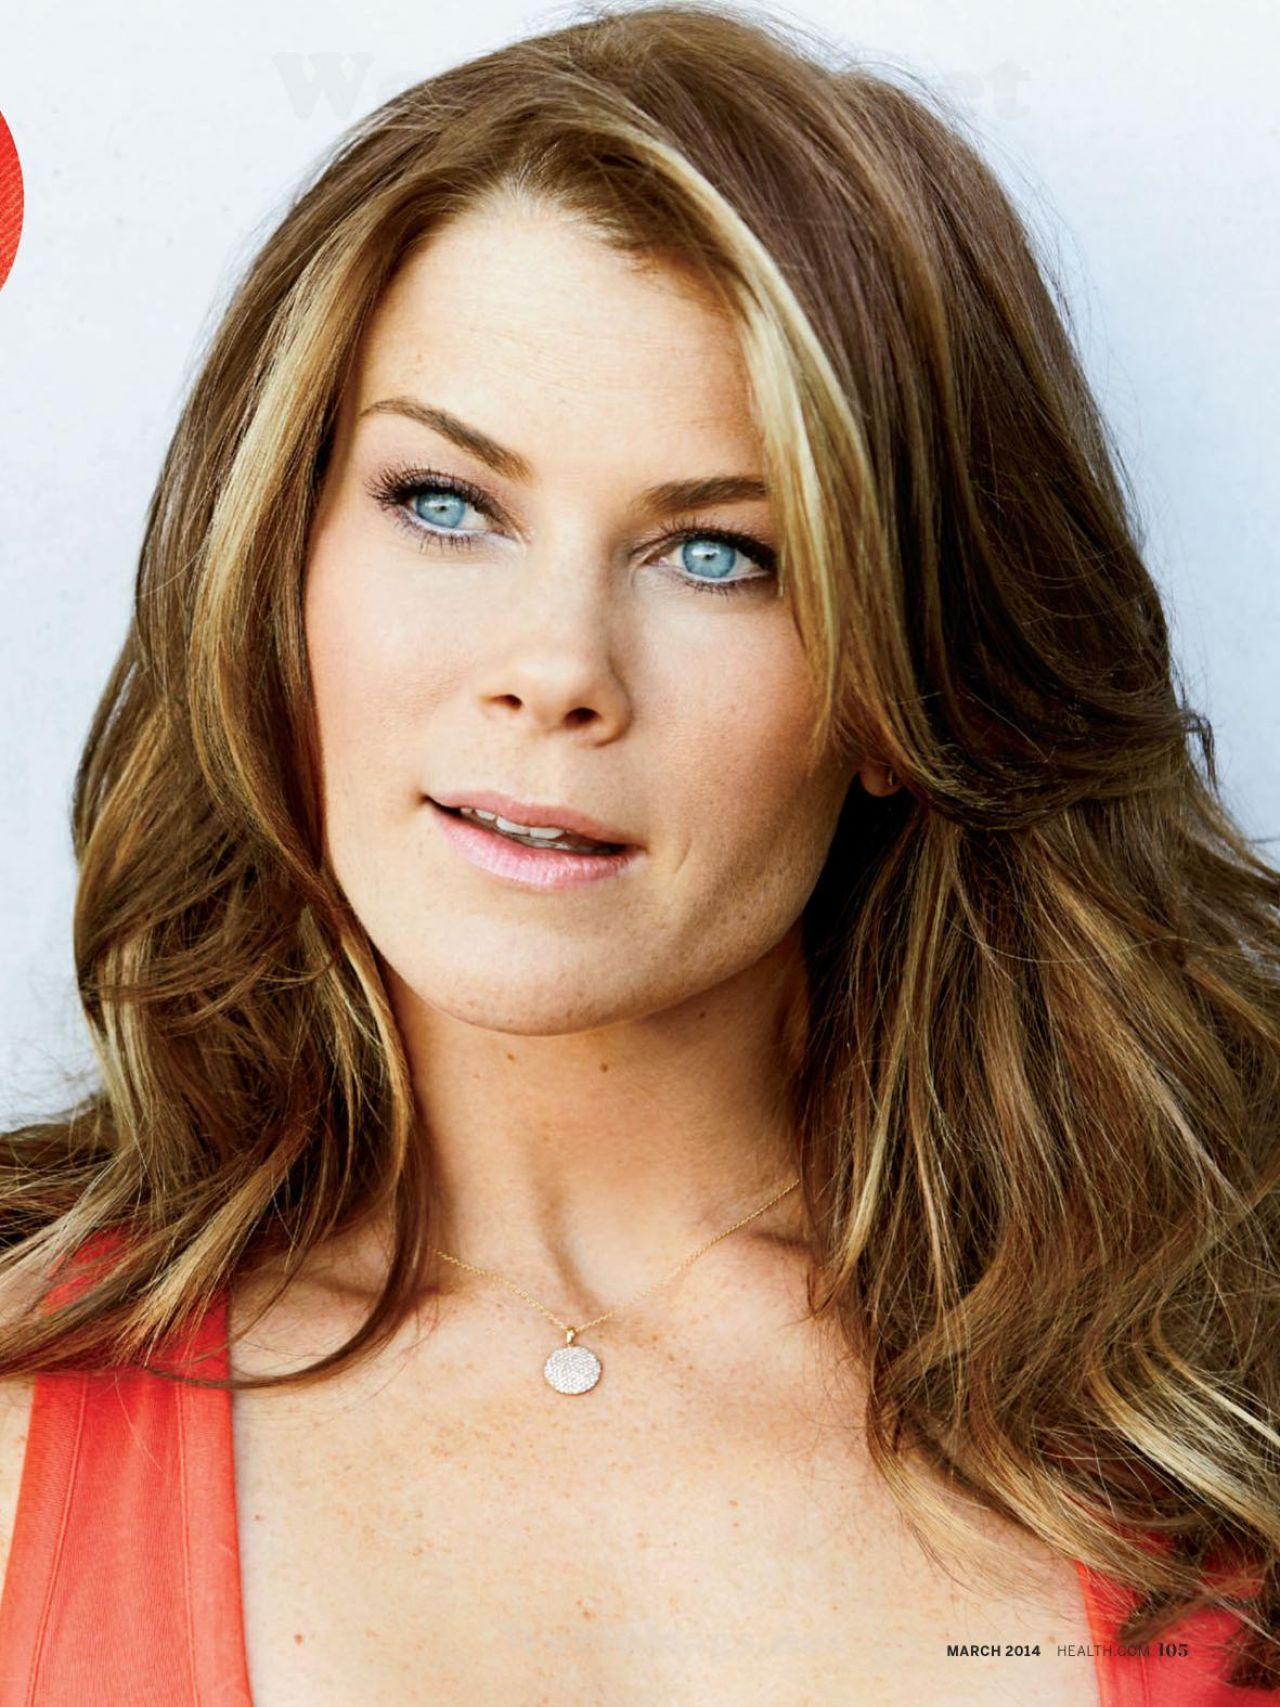 alison sweeney instagramalison sweeney 2016, alison sweeney height weight, alison sweeney husband, alison sweeney movies and tv shows, alison sweeney instagram, alison sweeney, alison sweeney twitter, alison sweeney makeup, alison sweeney net worth, alison sweeney biggest loser, alison sweeney days of our lives, alison sweeney weight loss, alison sweeney movies, alison sweeney returning to days, alison sweeney measurements, alison sweeney diet, alison sweeney hot, alison sweeney hallmark movies, alison sweeney weight loss diet, alison sweeney leaving biggest loser